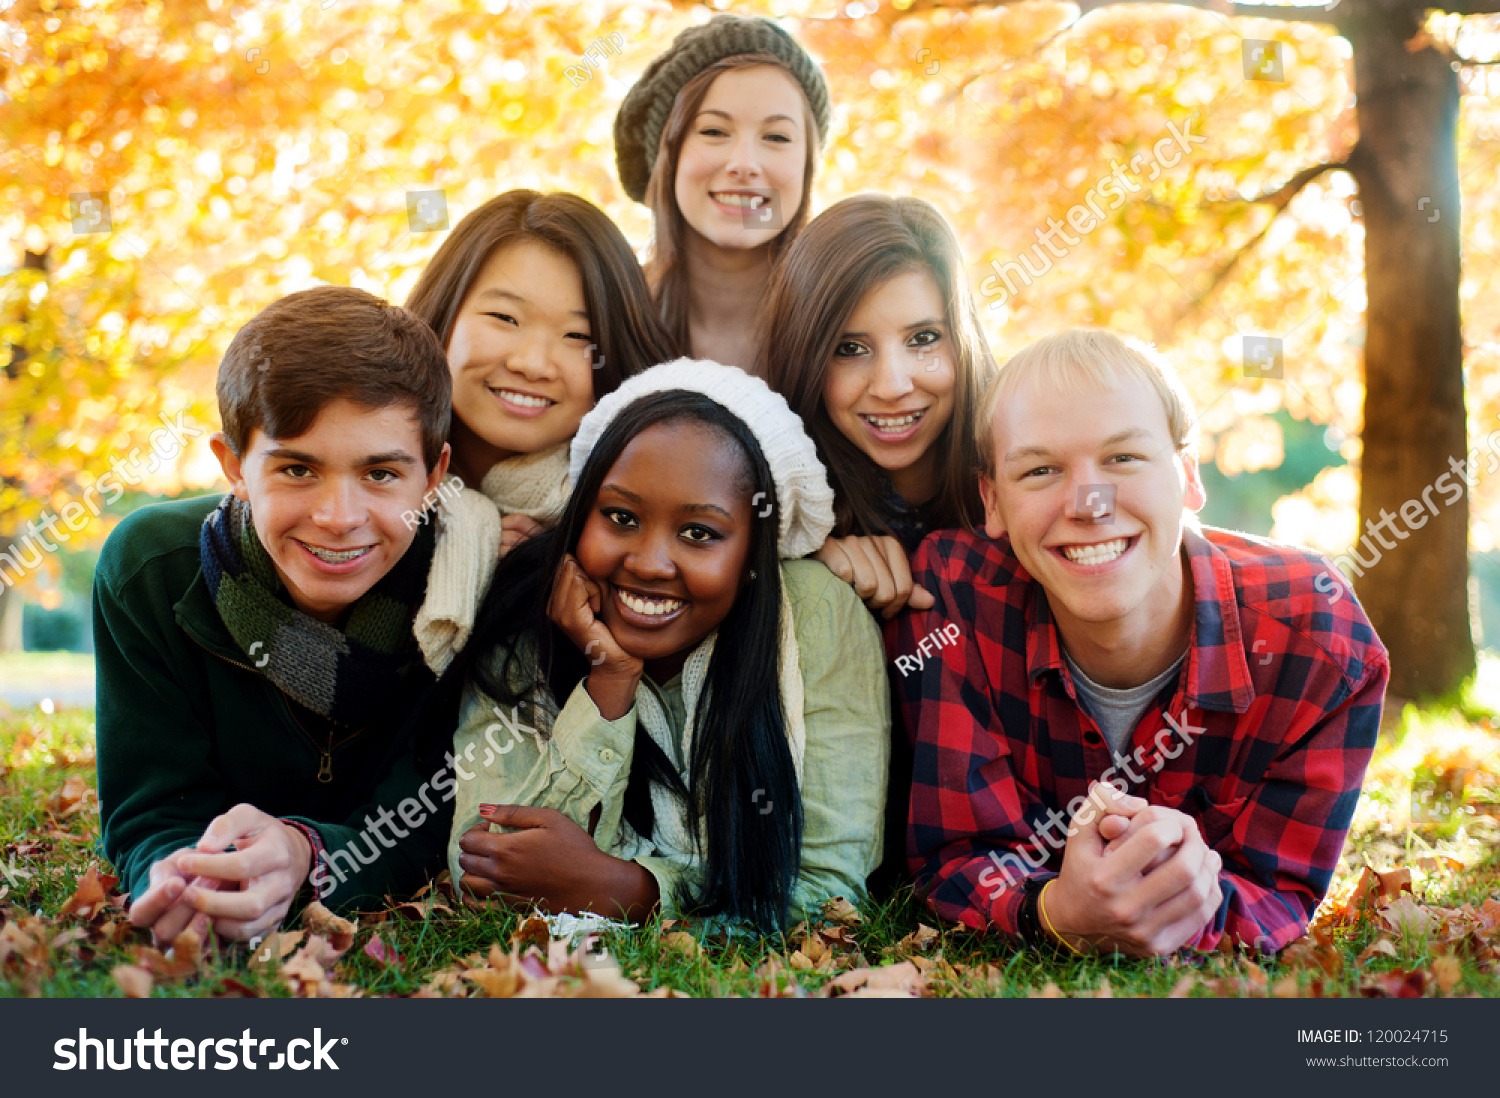 Diverse Group Smiling Friends Pyramid Autumn Stock Photo ...